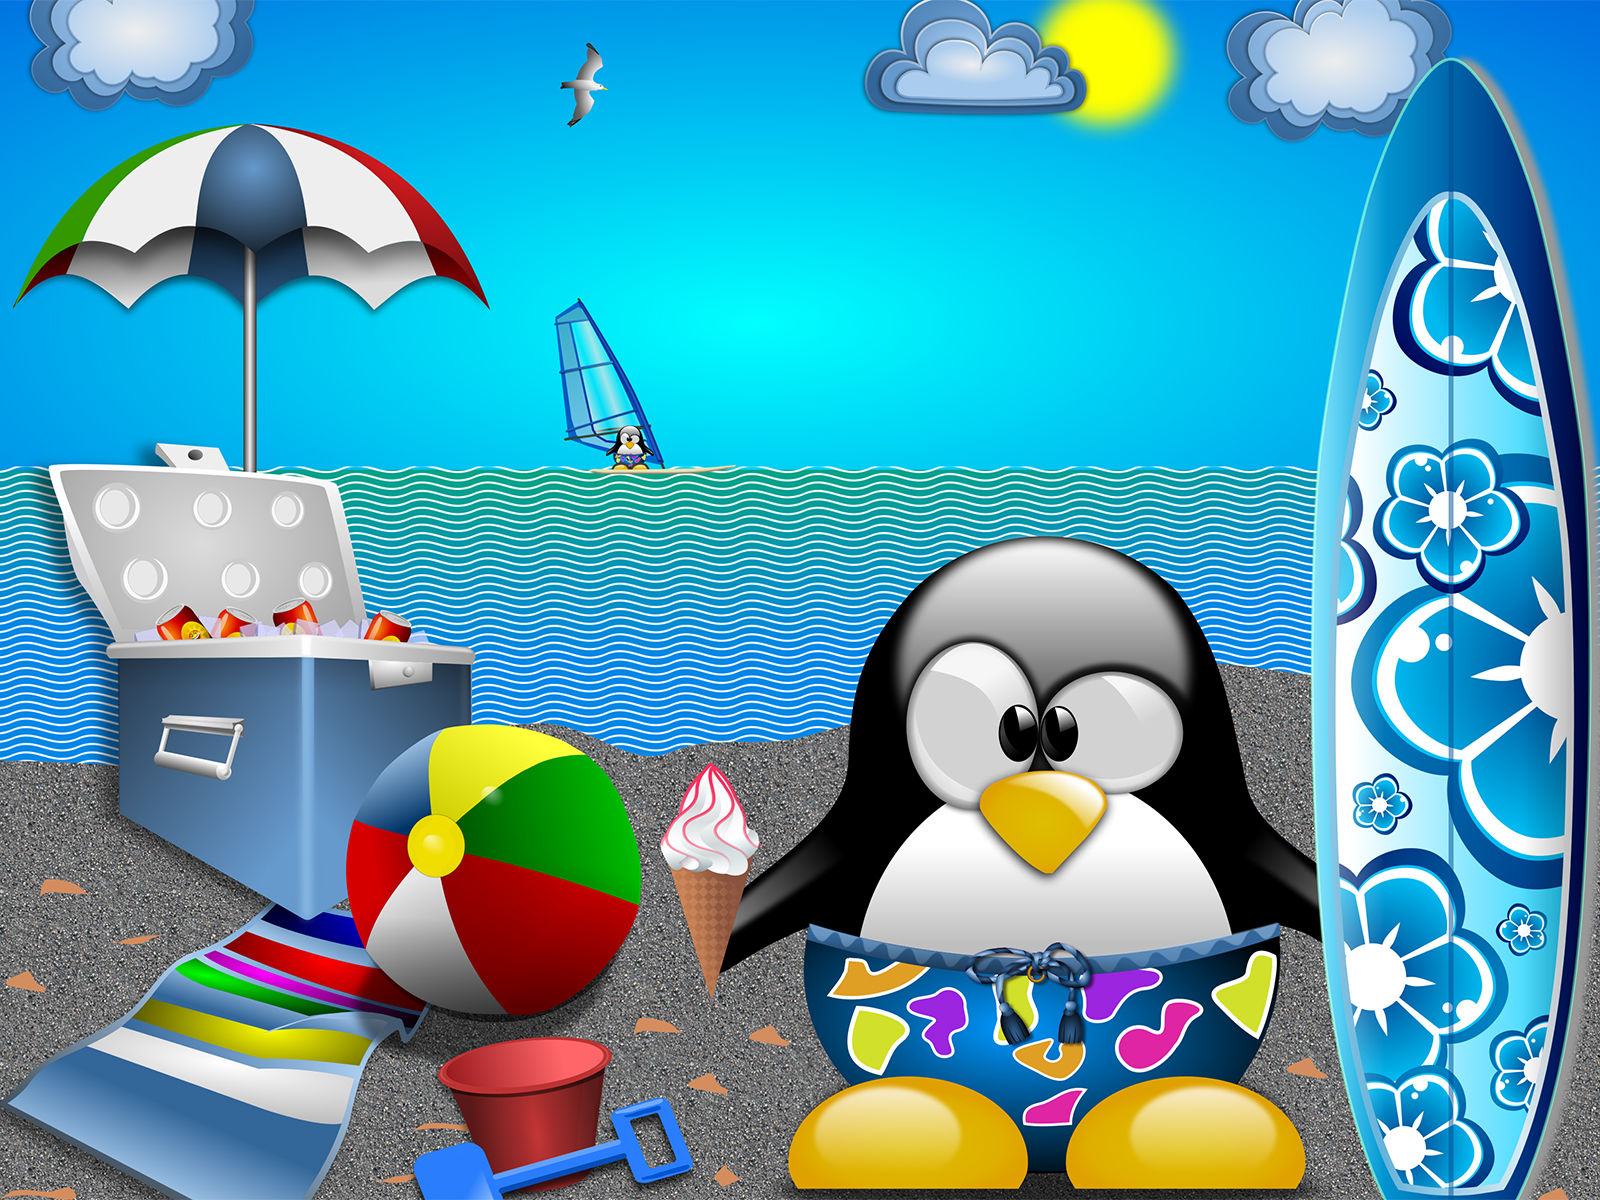 Tux at the Beach Backgrounds